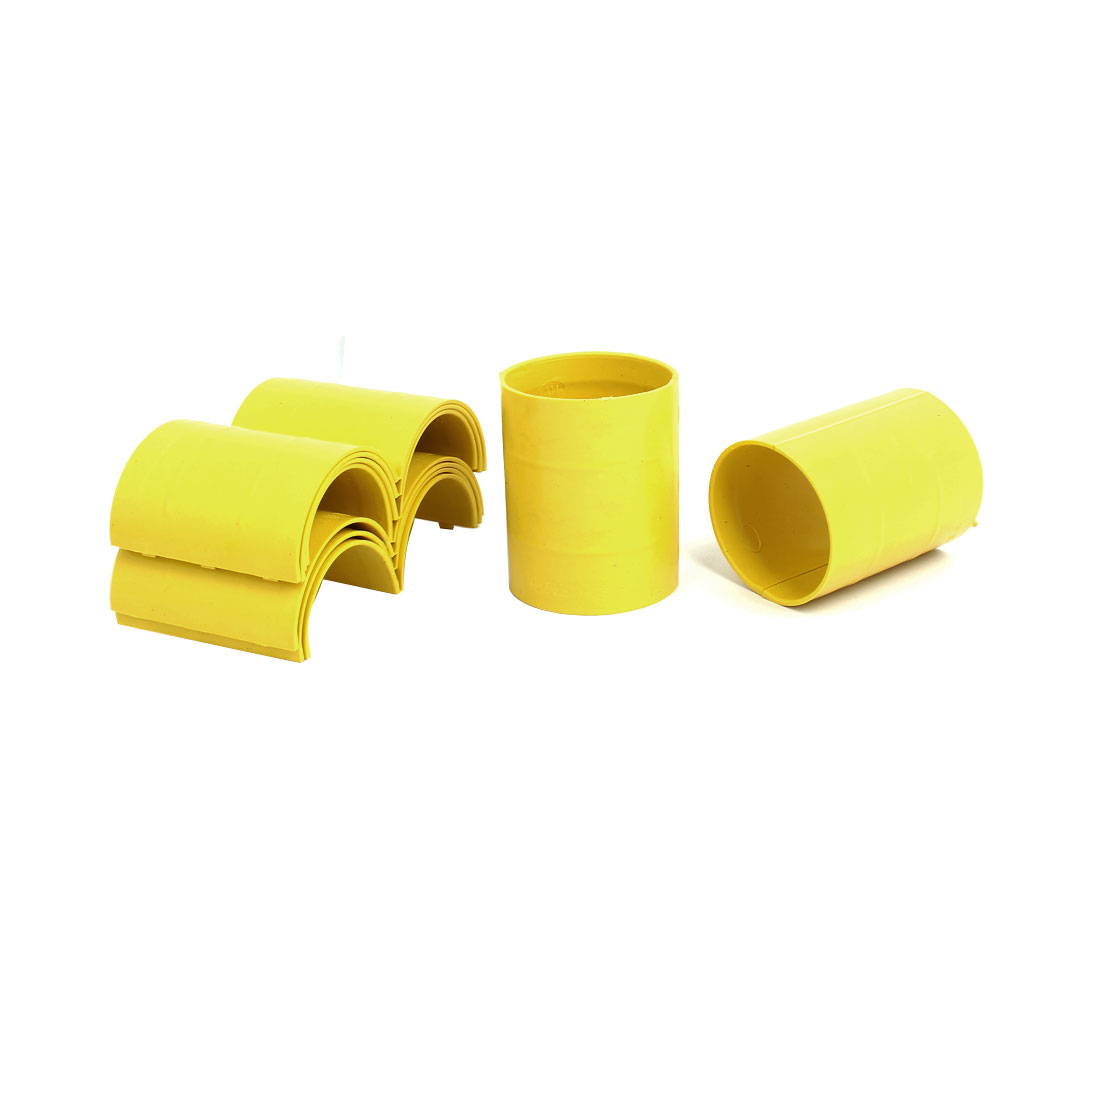 63mm Dia 2mm Thickness Central Air Conditioning Pipe Tube Clamp Yellow 9pcs